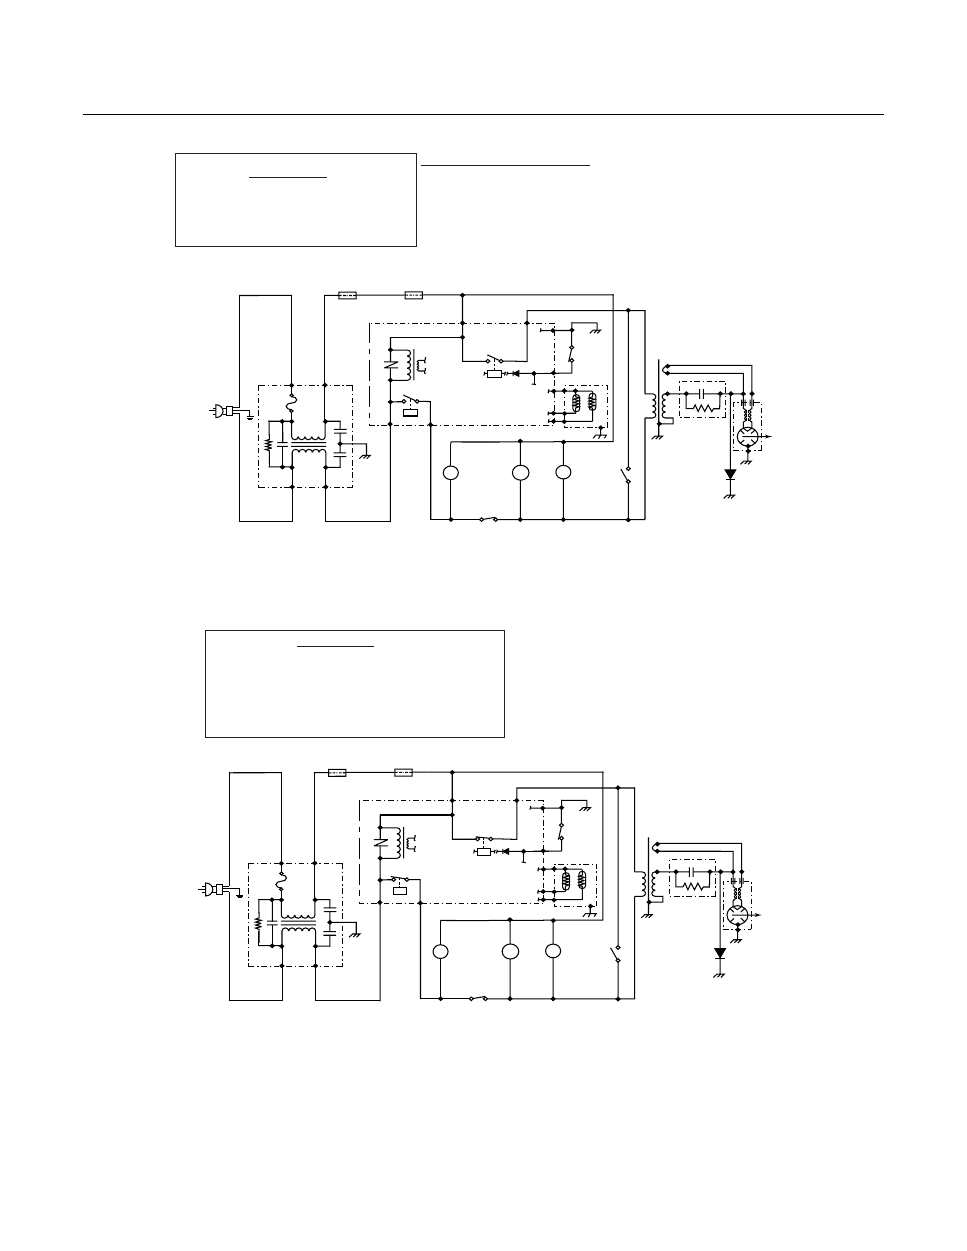 Trane Commercial Wiring Diagrams Get Free Image About Wiring Diagram